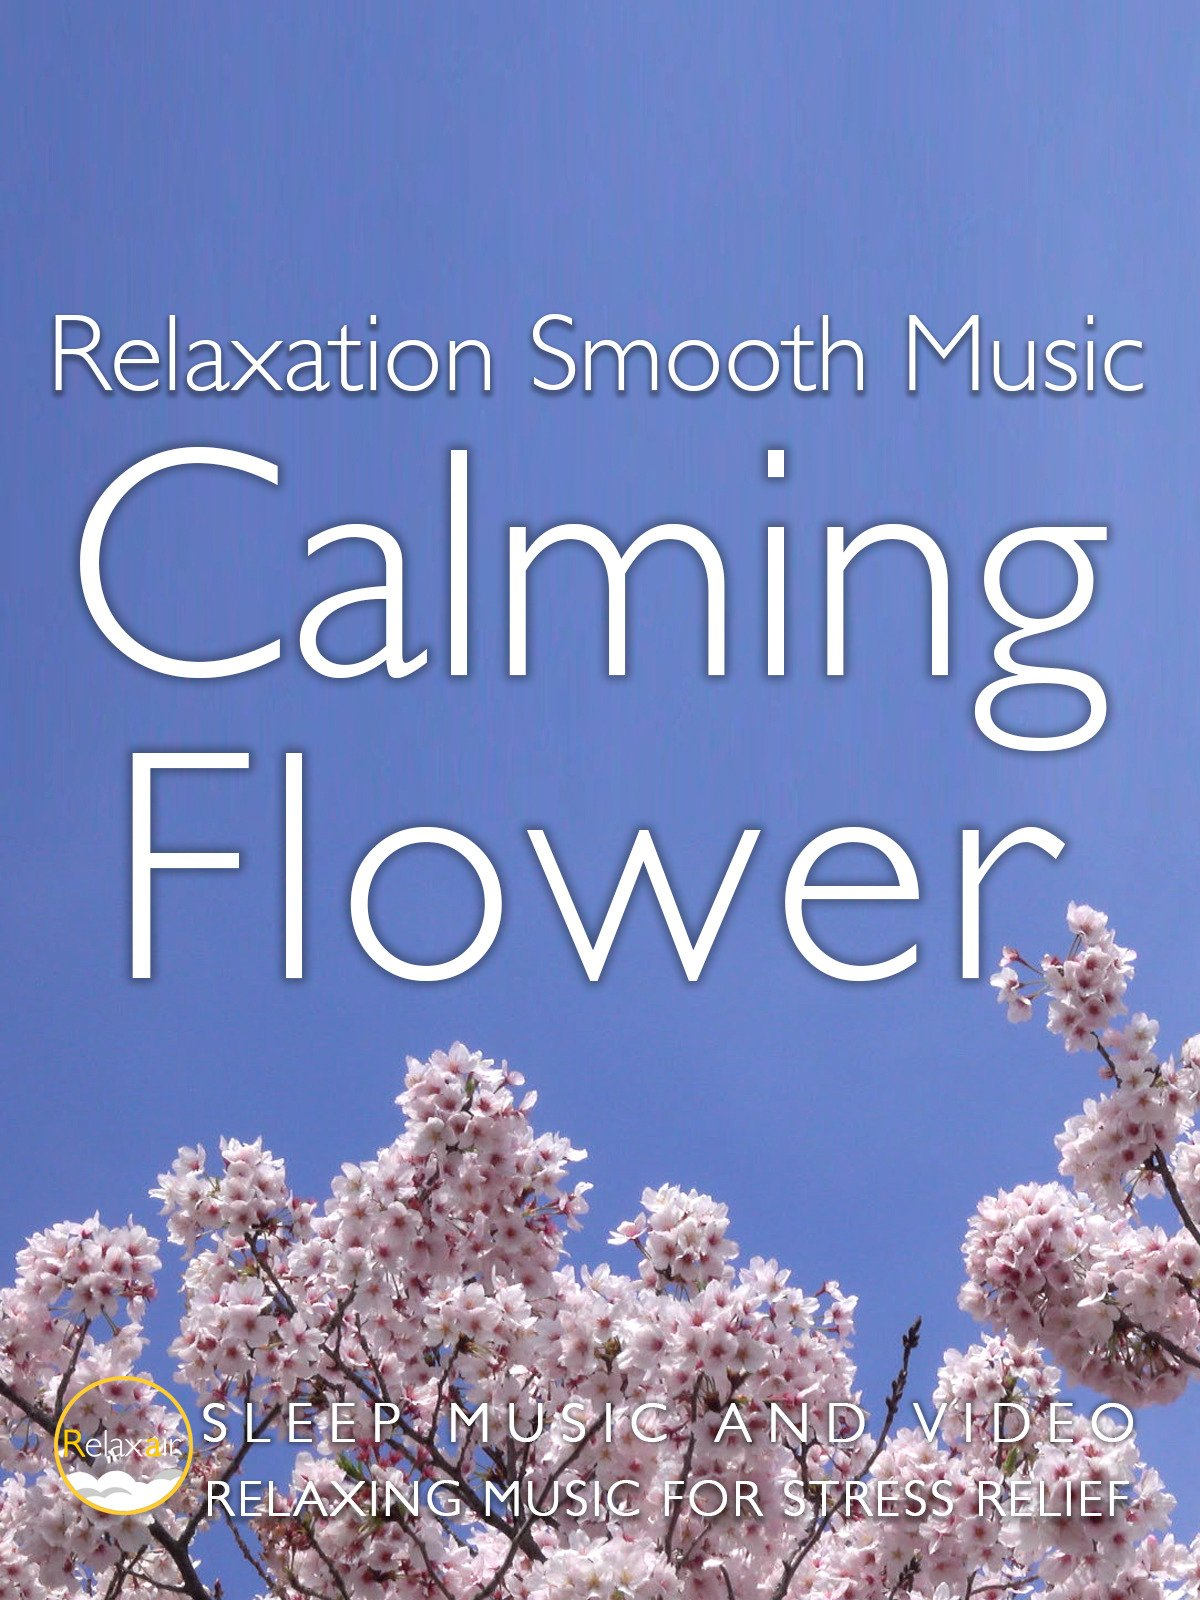 Relaxation Smooth Music Calming Flower Sleep Music and Video Relaxing Music for Stress Relife